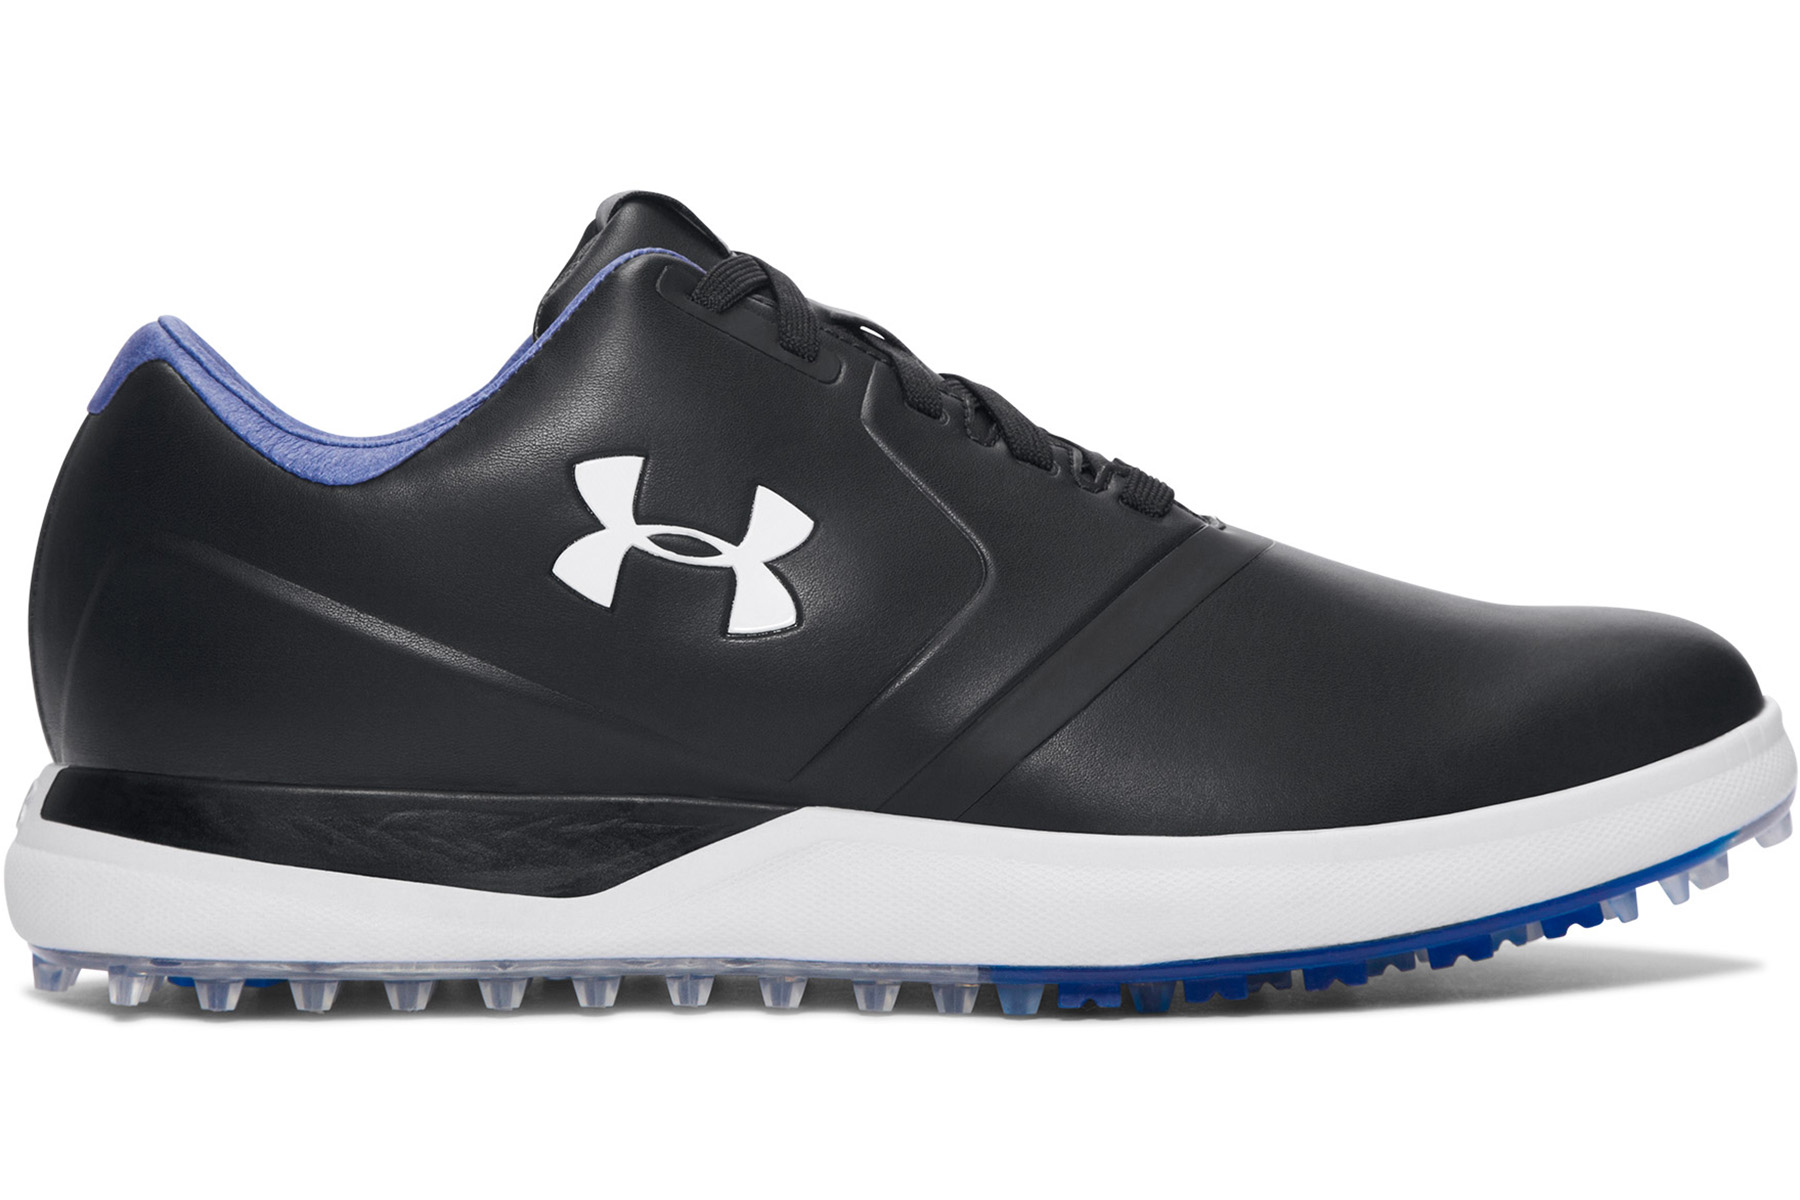 Under Armour Performance Spikeless Shoes From American Golf